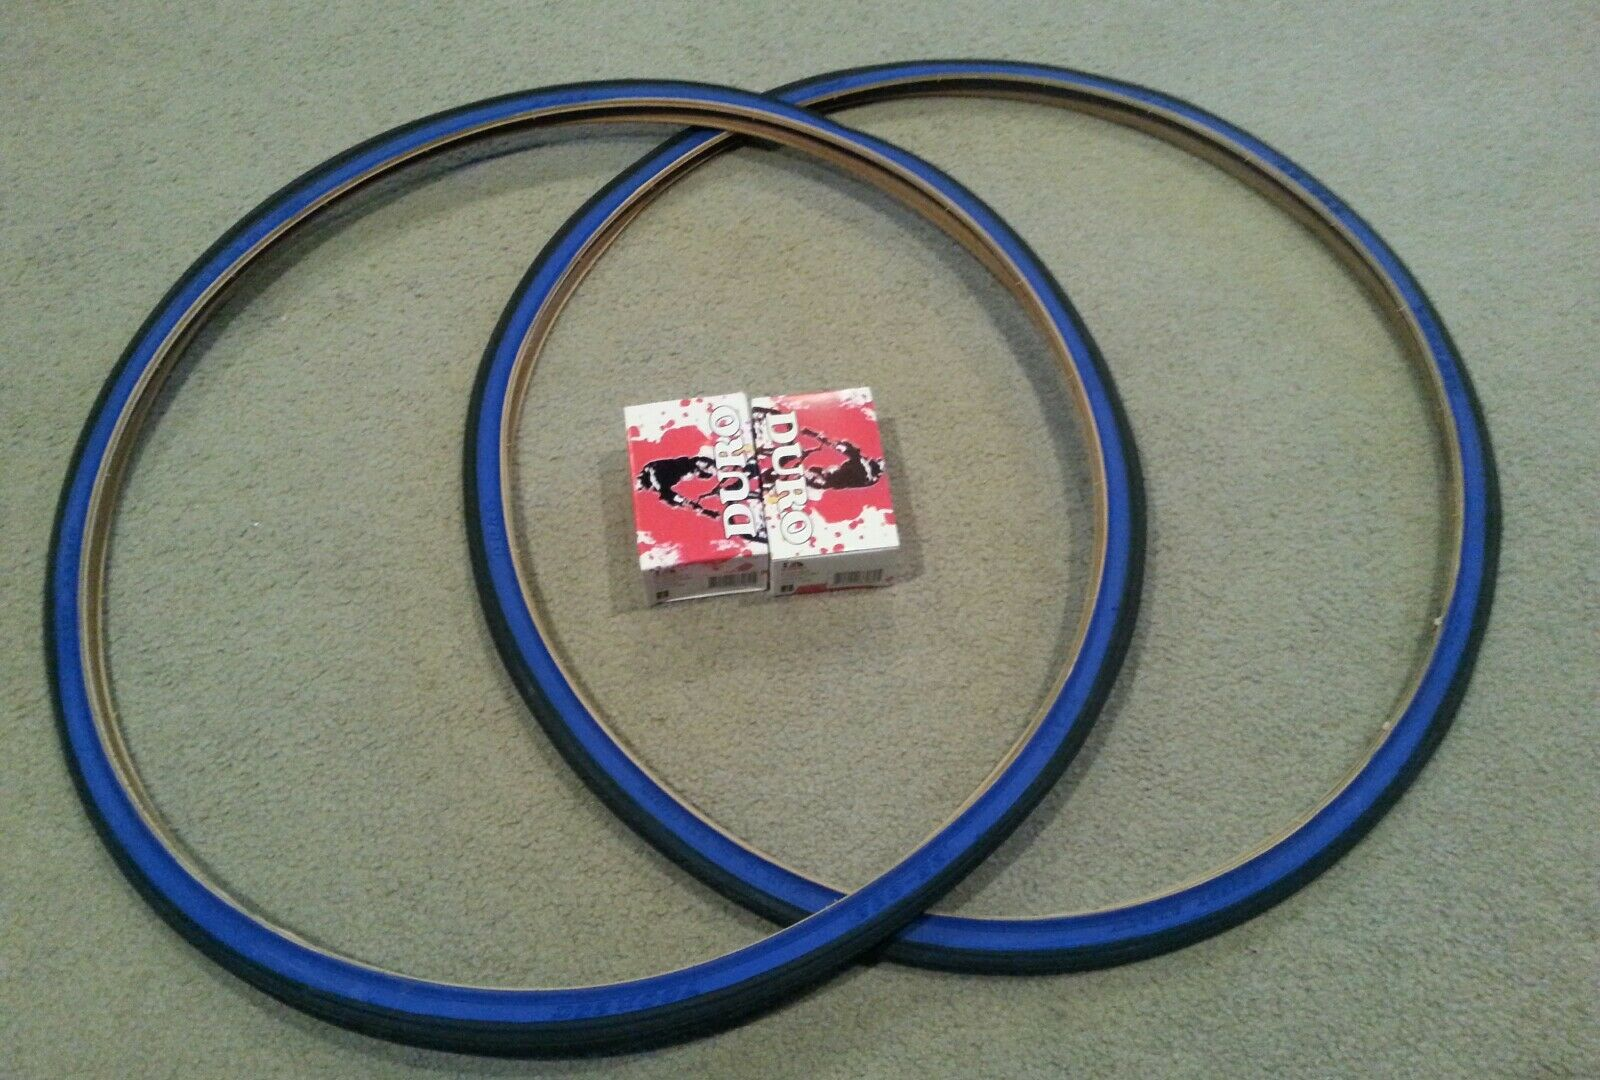 TWO(2) DURO 700x25C BICYCLE TIRES blueE WALL & 2 TUBES, ROAD FIXIE TRAC BIKES